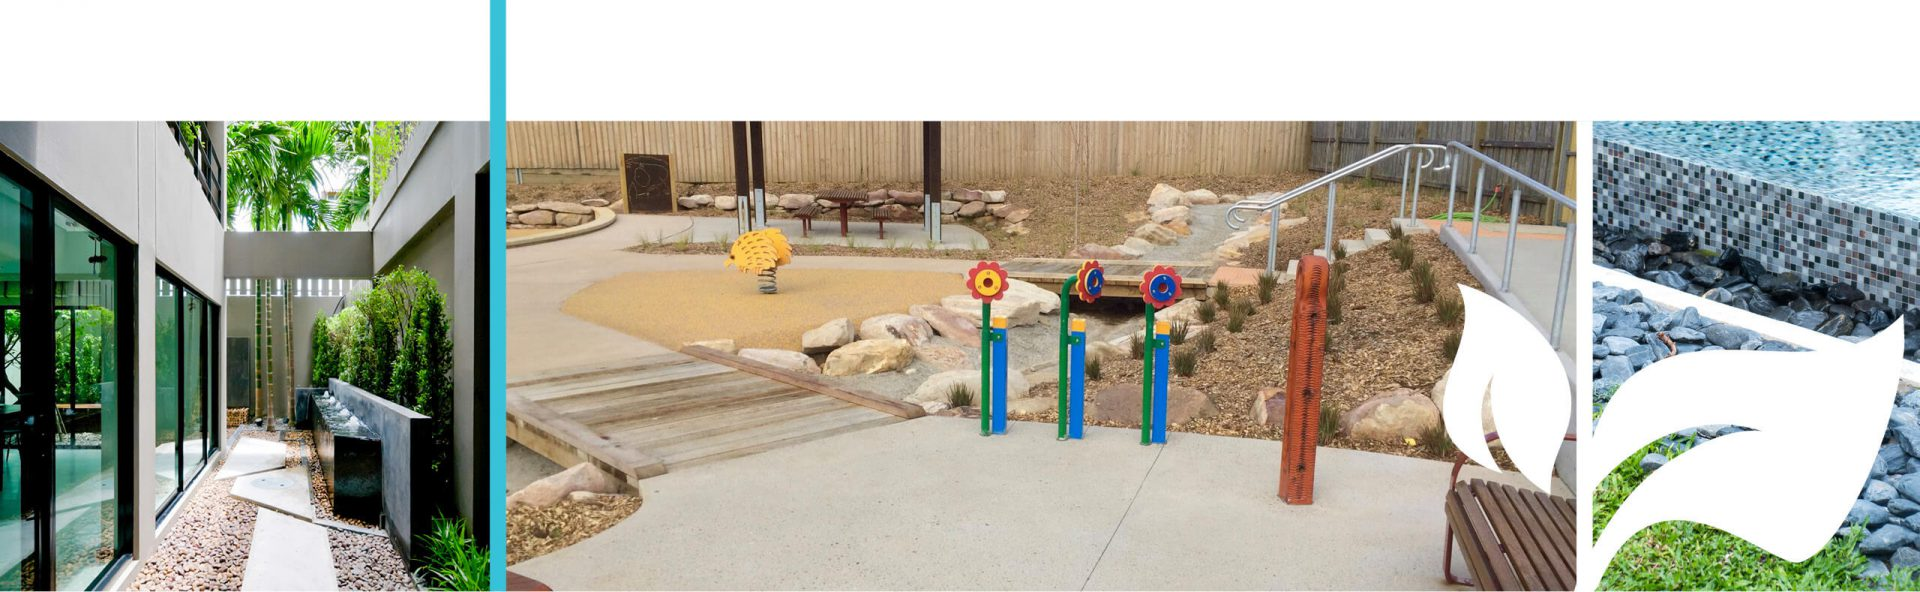 Outdoor play area for children